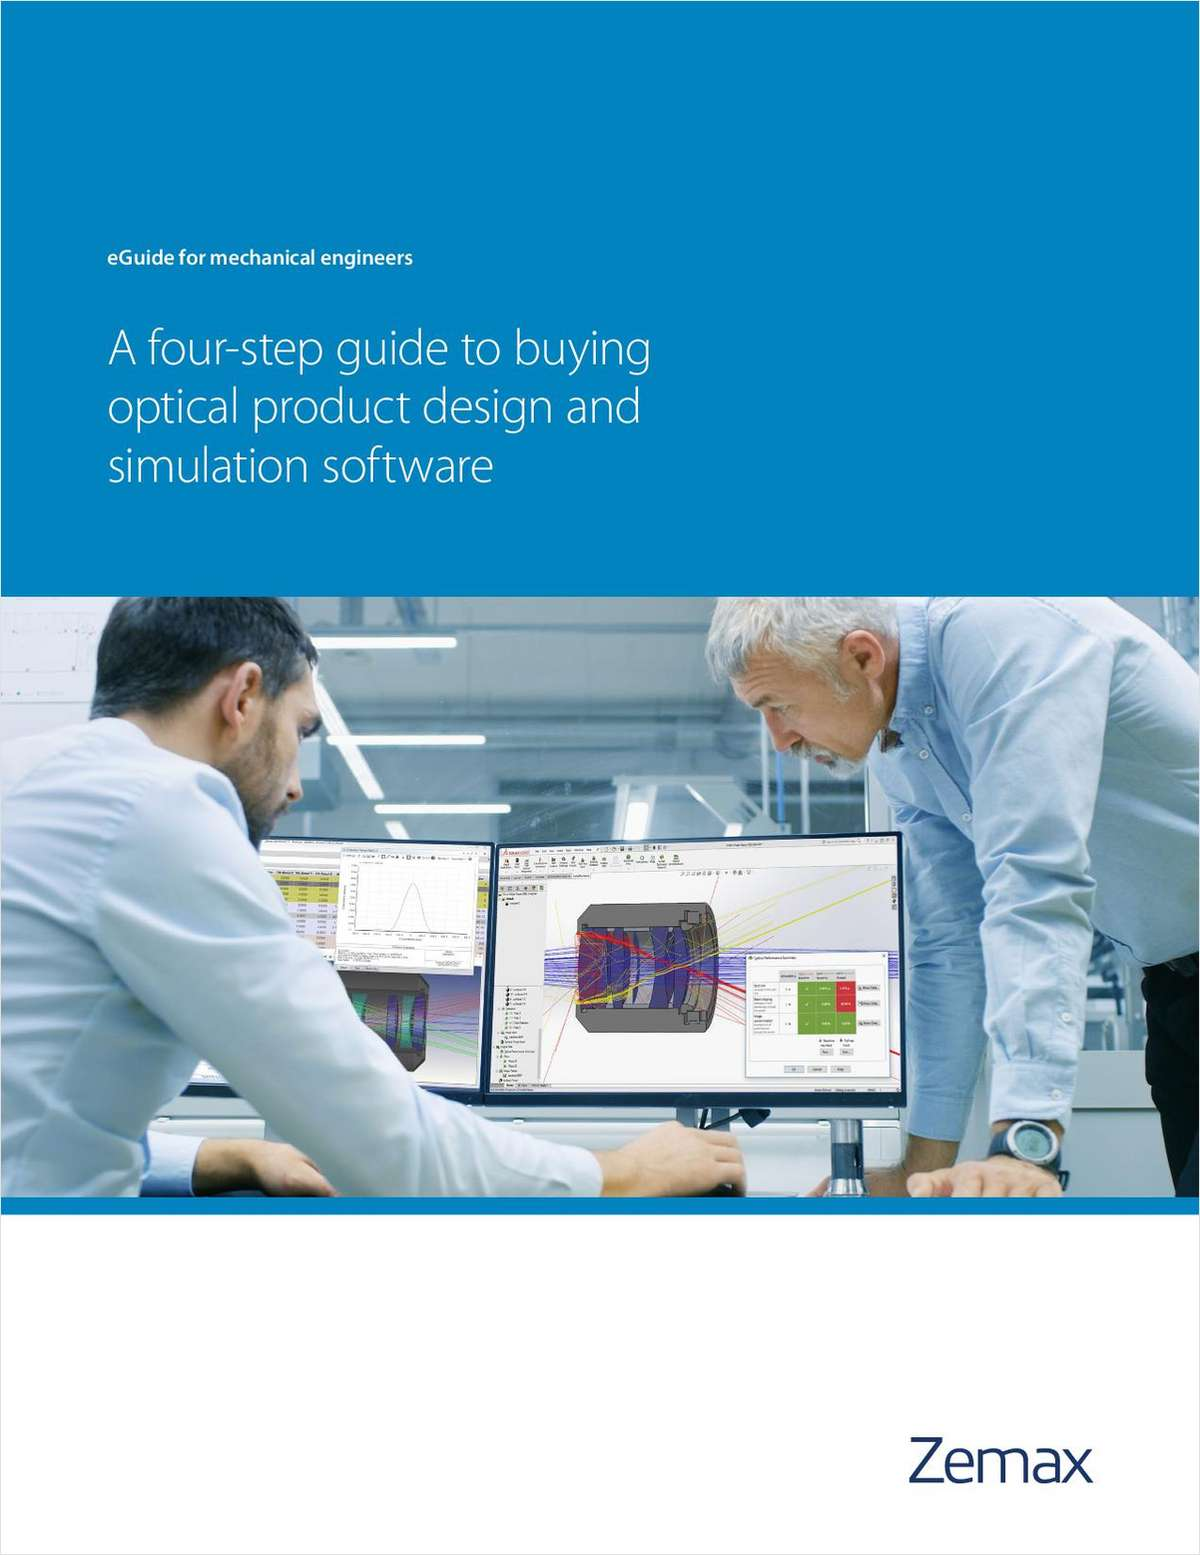 A Four-step Guide to Buying Optical Product Design and Simulation Software